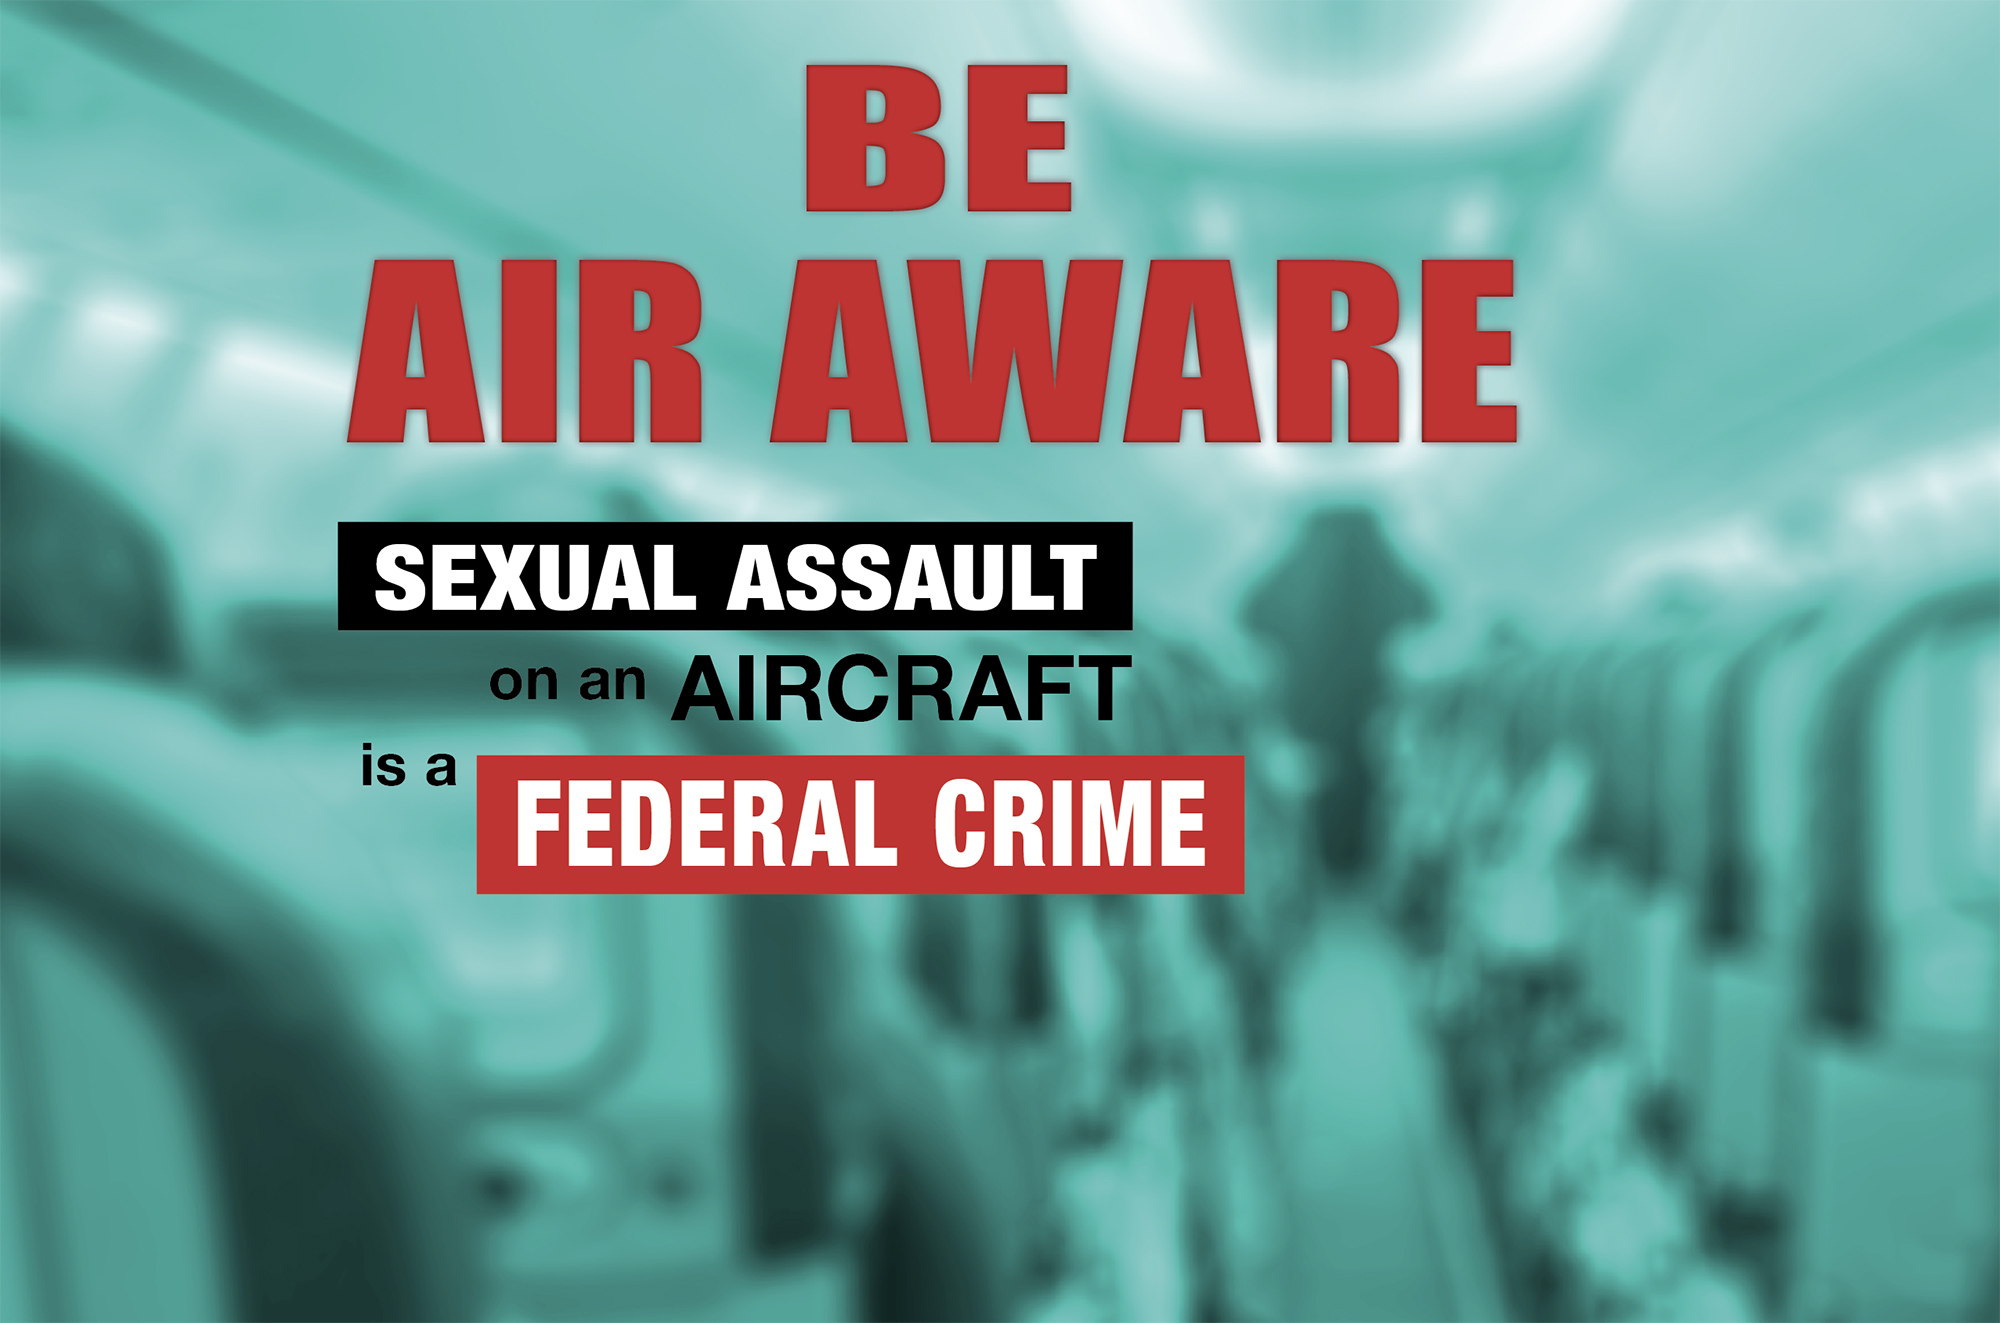 Imagery and text from awareness poster cautioning the public to Be Air Aware and that sexual assault on an aircraft is a federal crime.